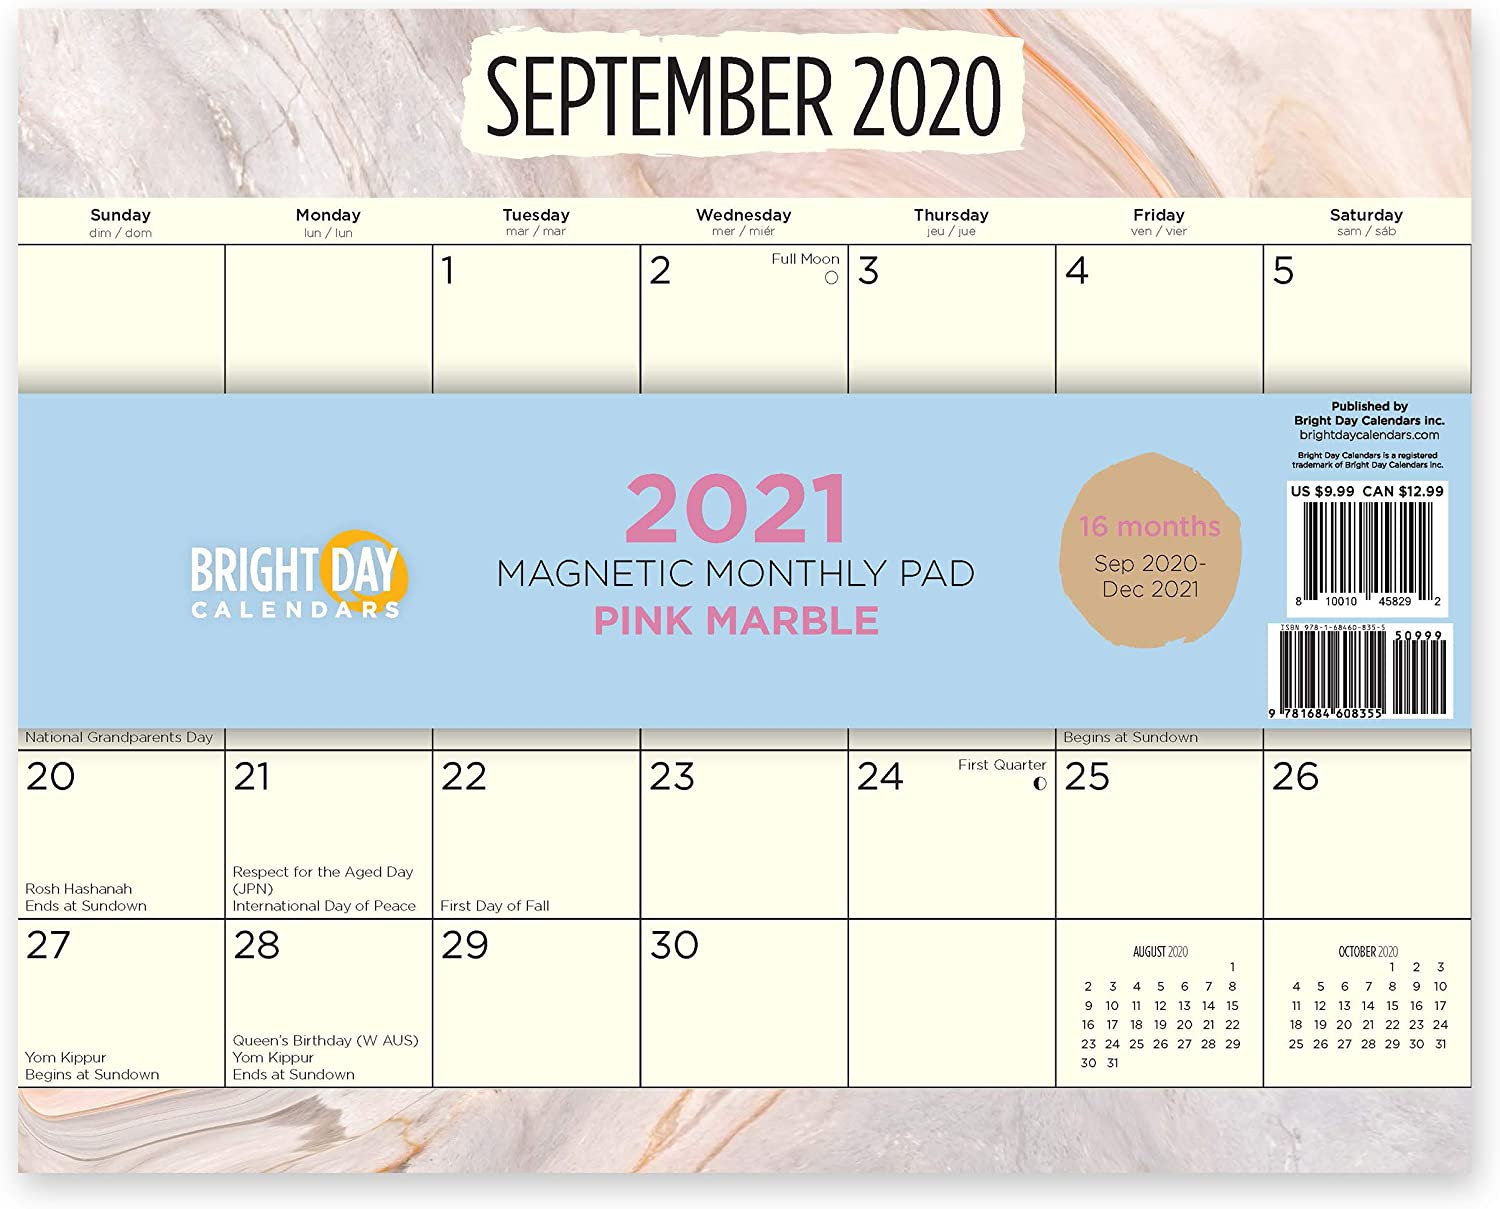 2021 Magnetic Refrigerator Calendar Wall Calendar Pad by Bright Day, 16 Month 8 x 10 Inch… (Pink Marble)